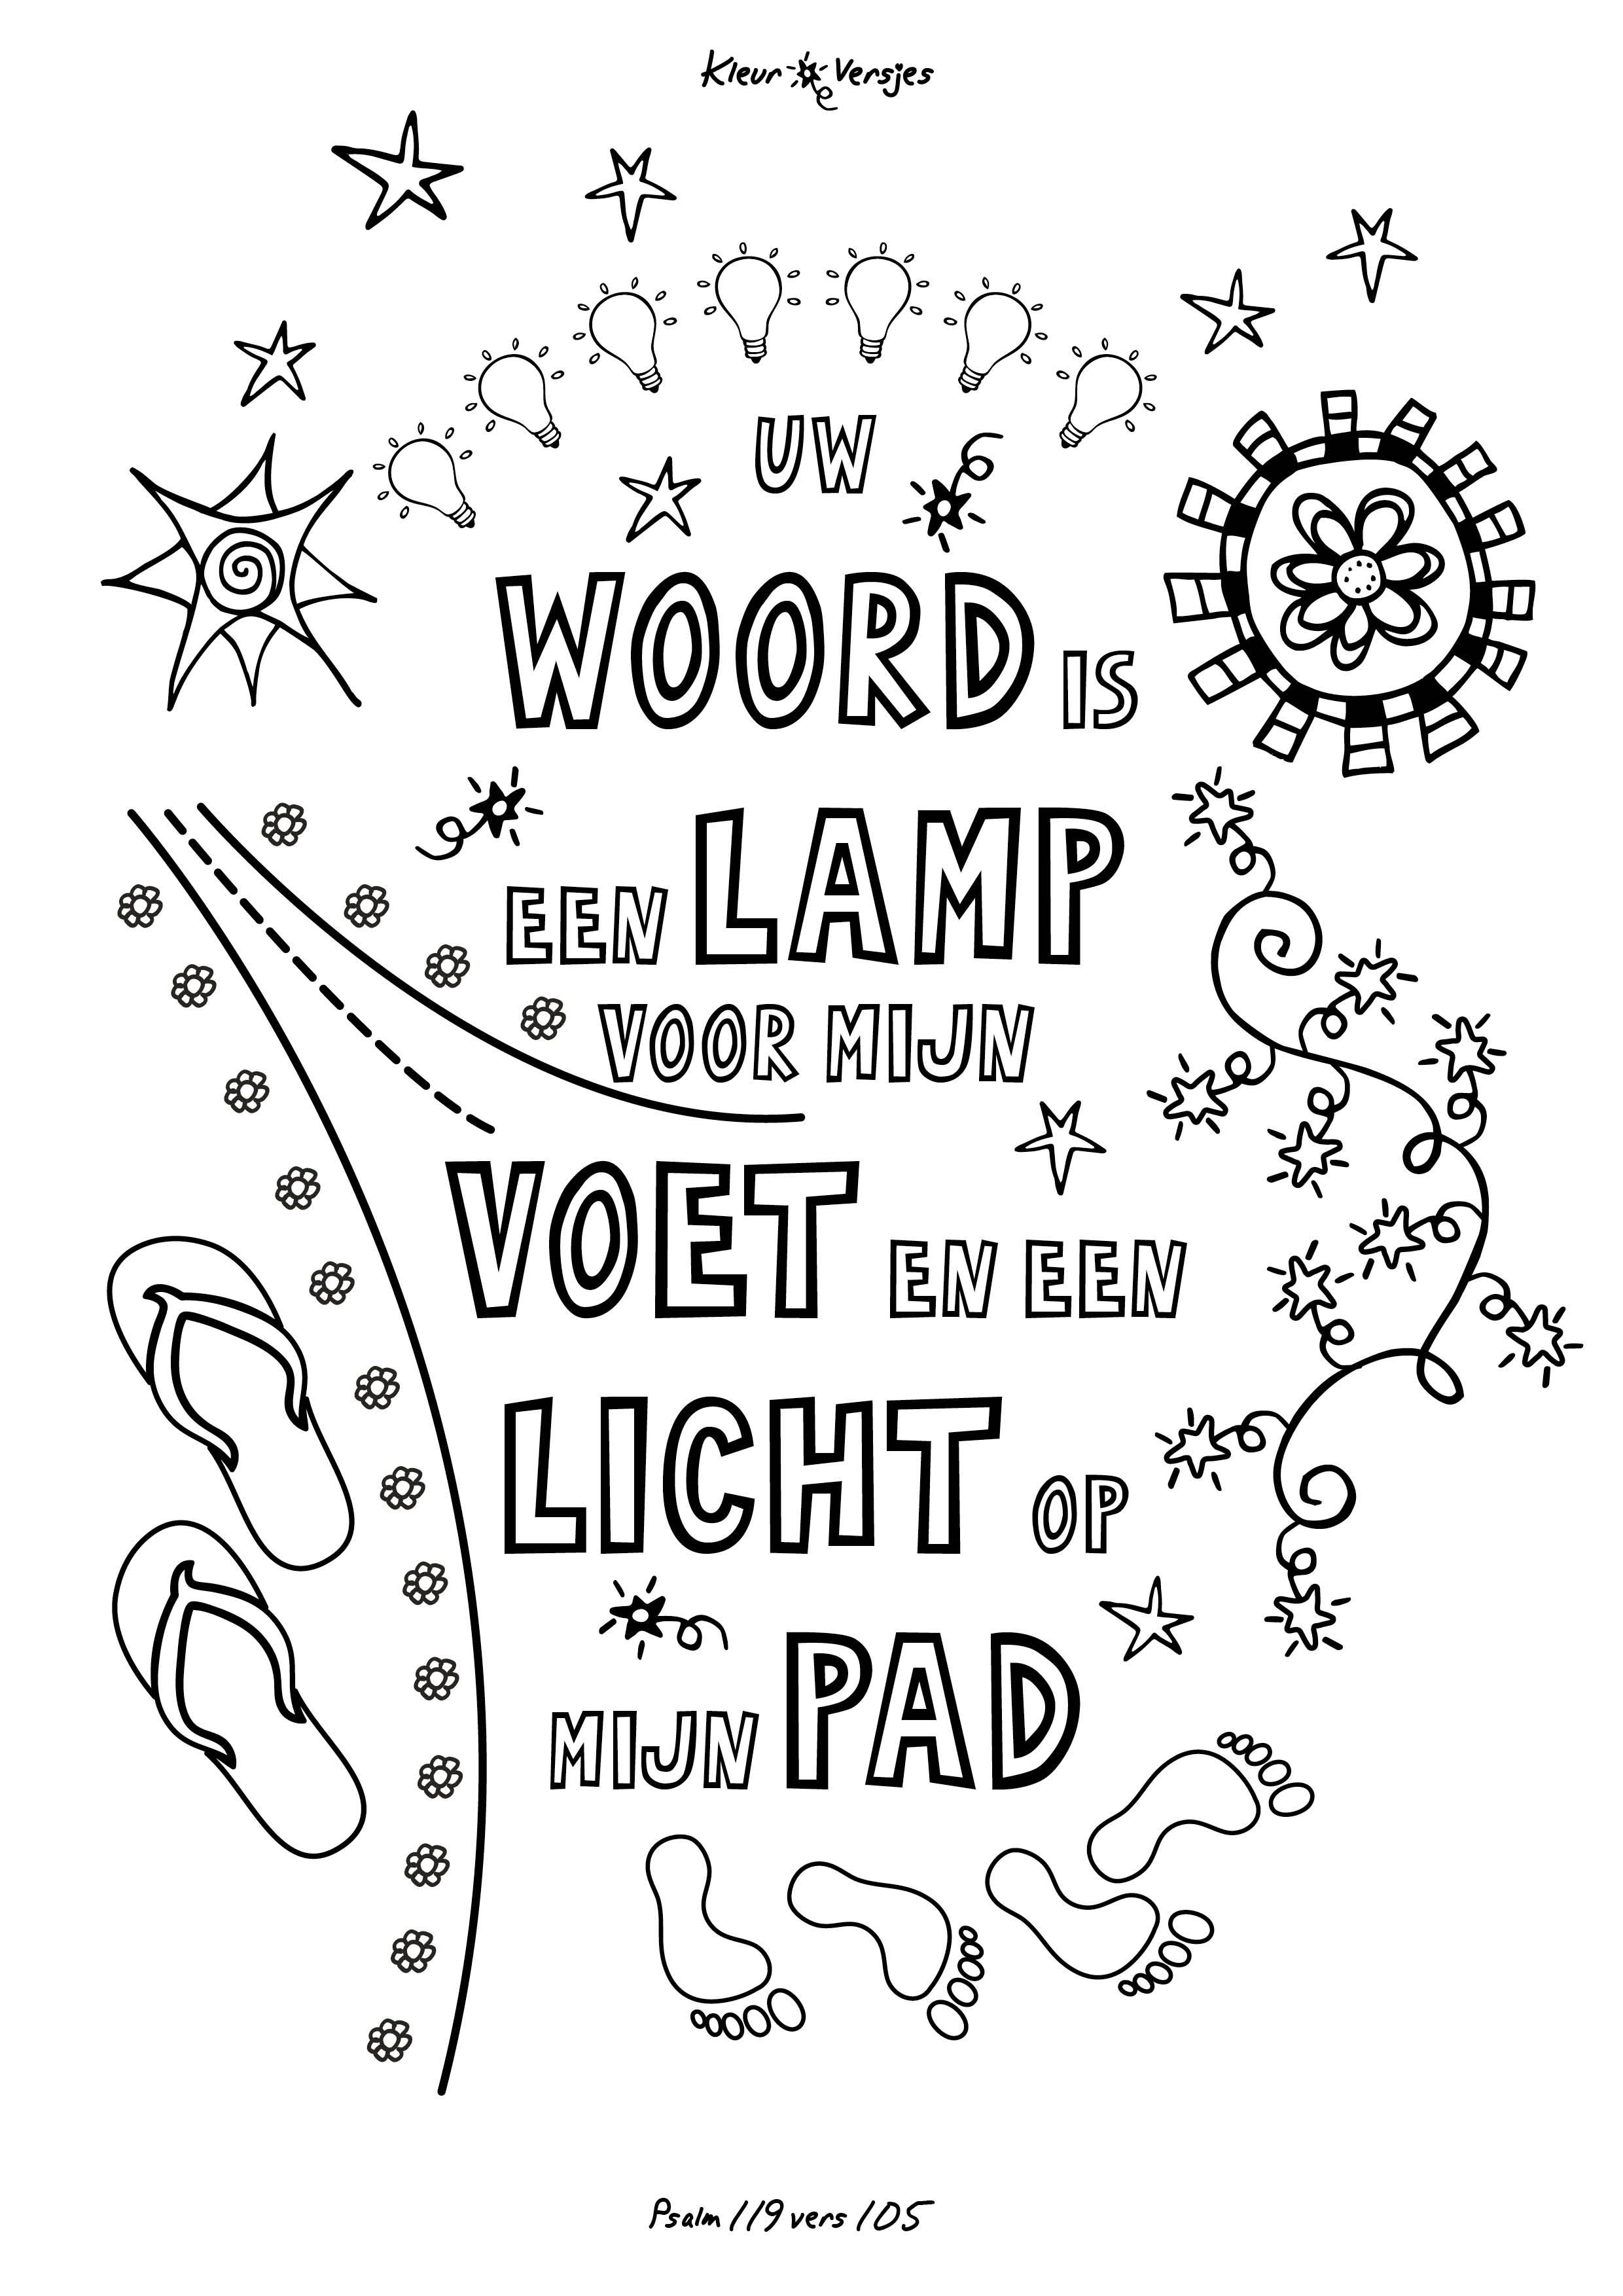 psalms 119 105 coloring page psalm 119 105 coloring sheet coloring pages page 119 coloring psalms 105